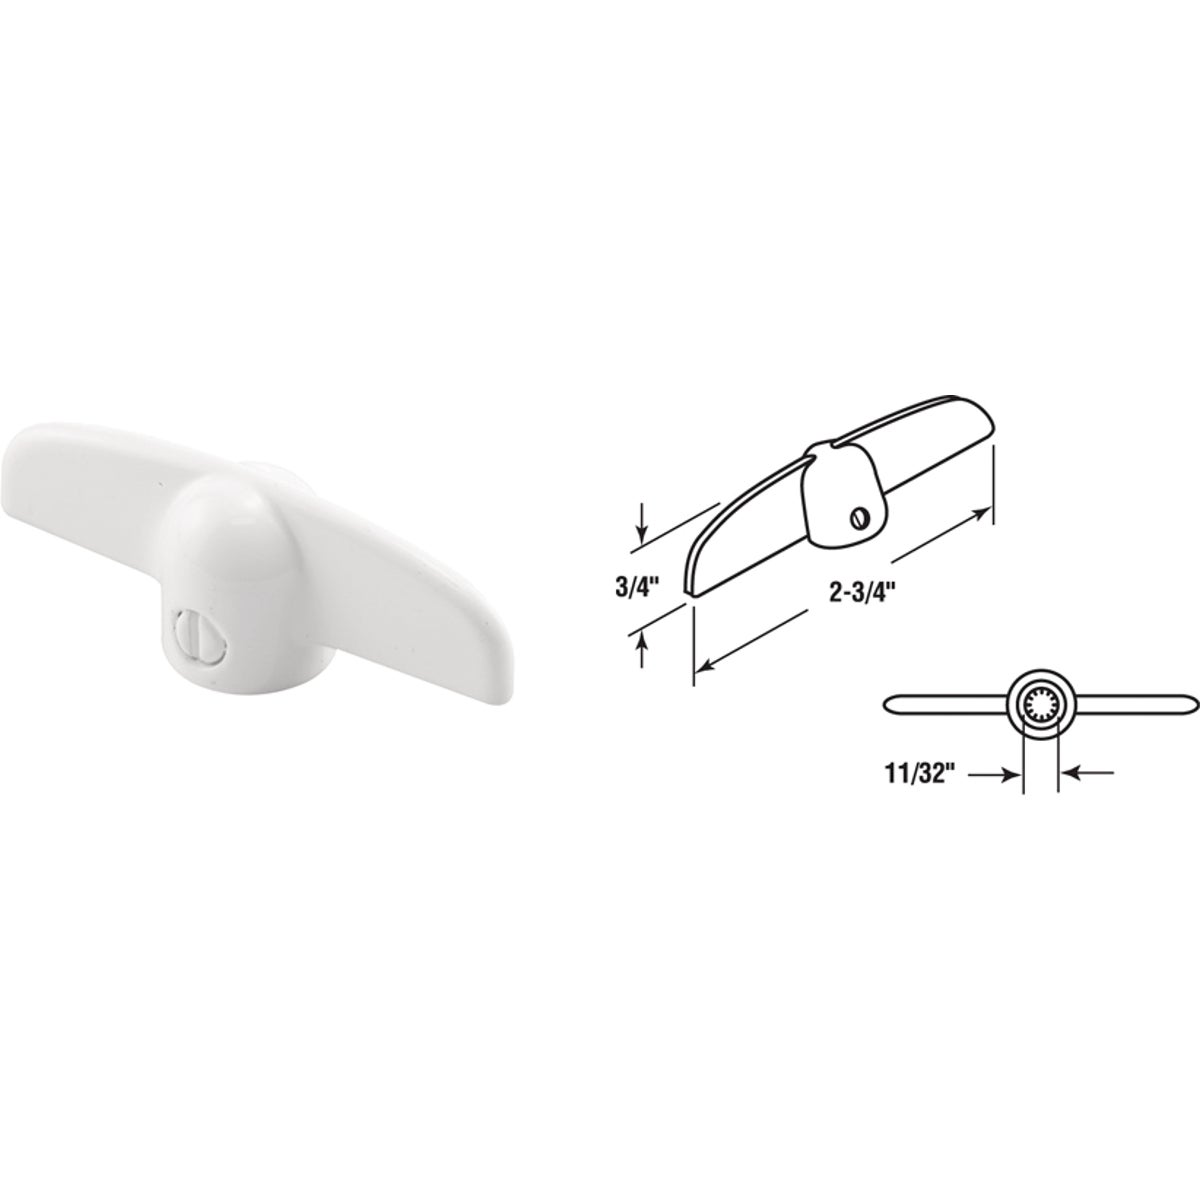 "3/8"" WHT CSMT T-HANDLE - 172006 by Prime Line Products"